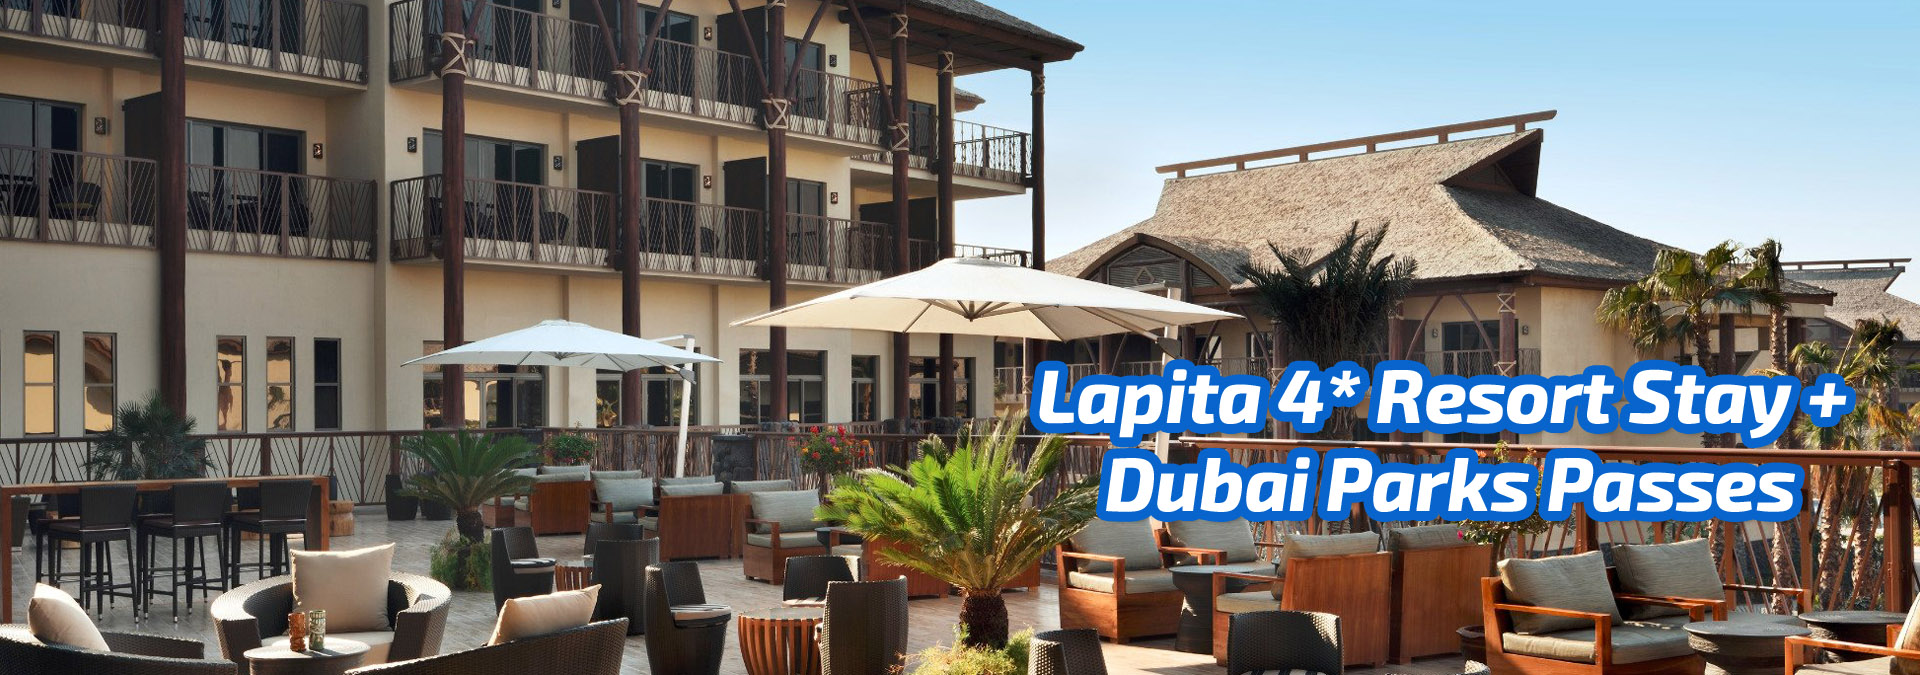 Lapita 4 Resort Stay+Dubai Parks Passes